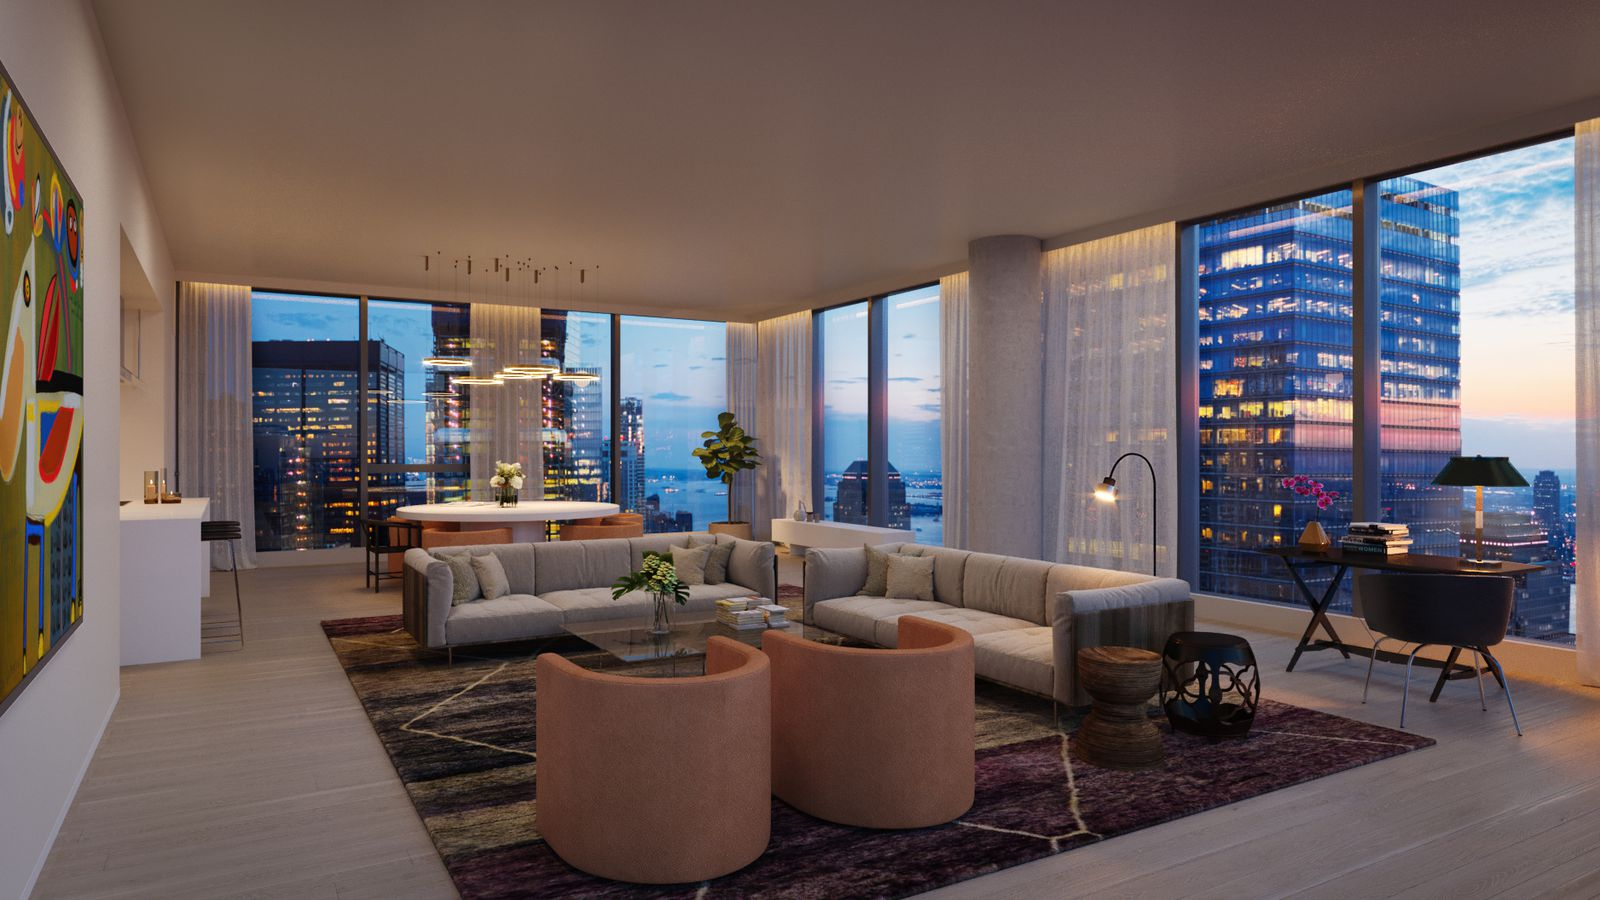 New Looks At 45 Park Place Sharif El Gamal S Fidi Condo